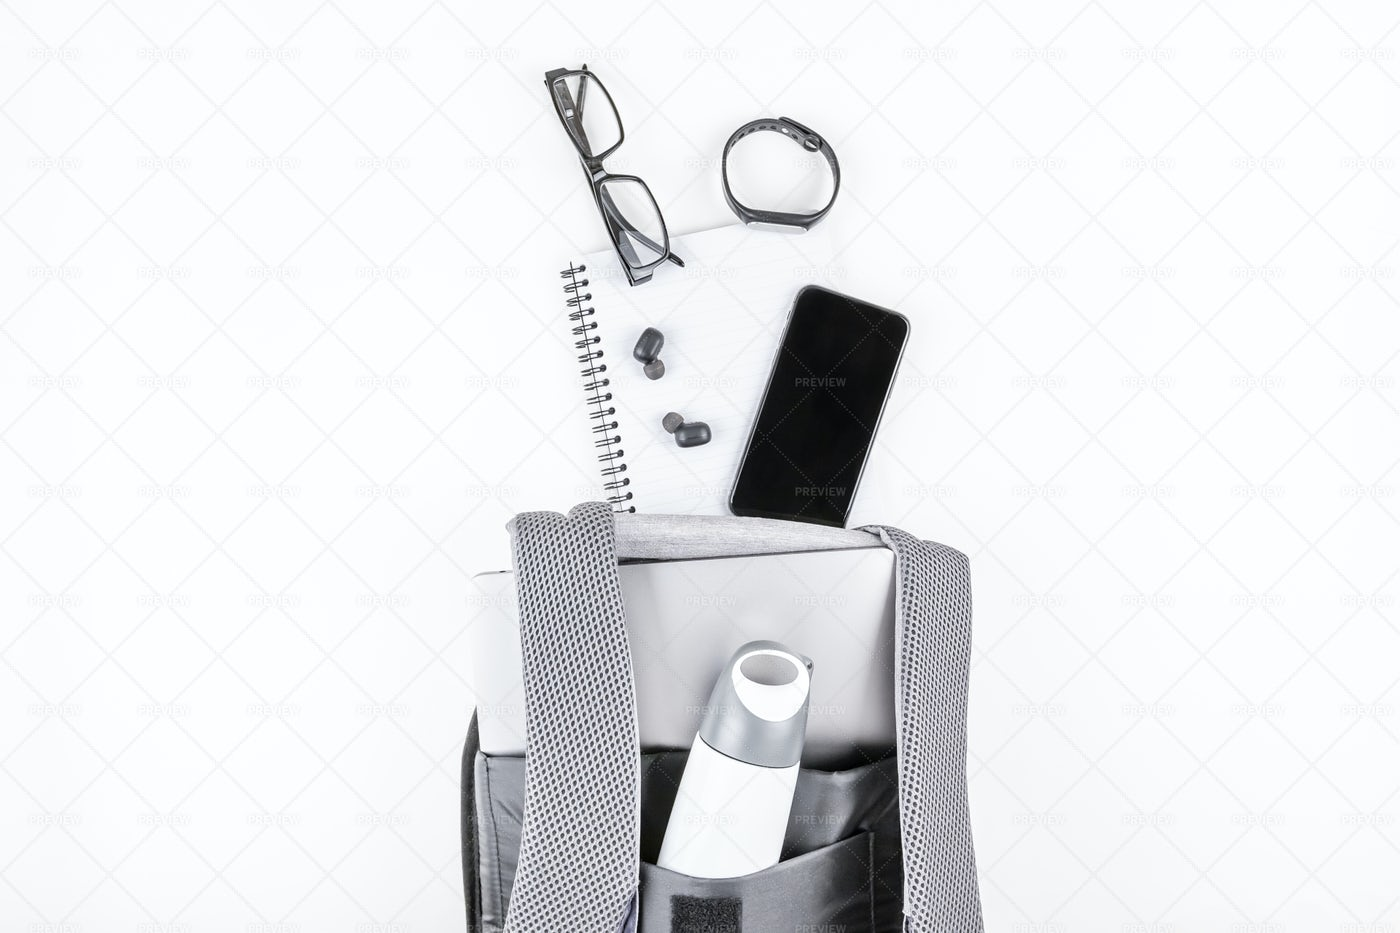 Backpack With Laptop And Gadgets: Stock Photos